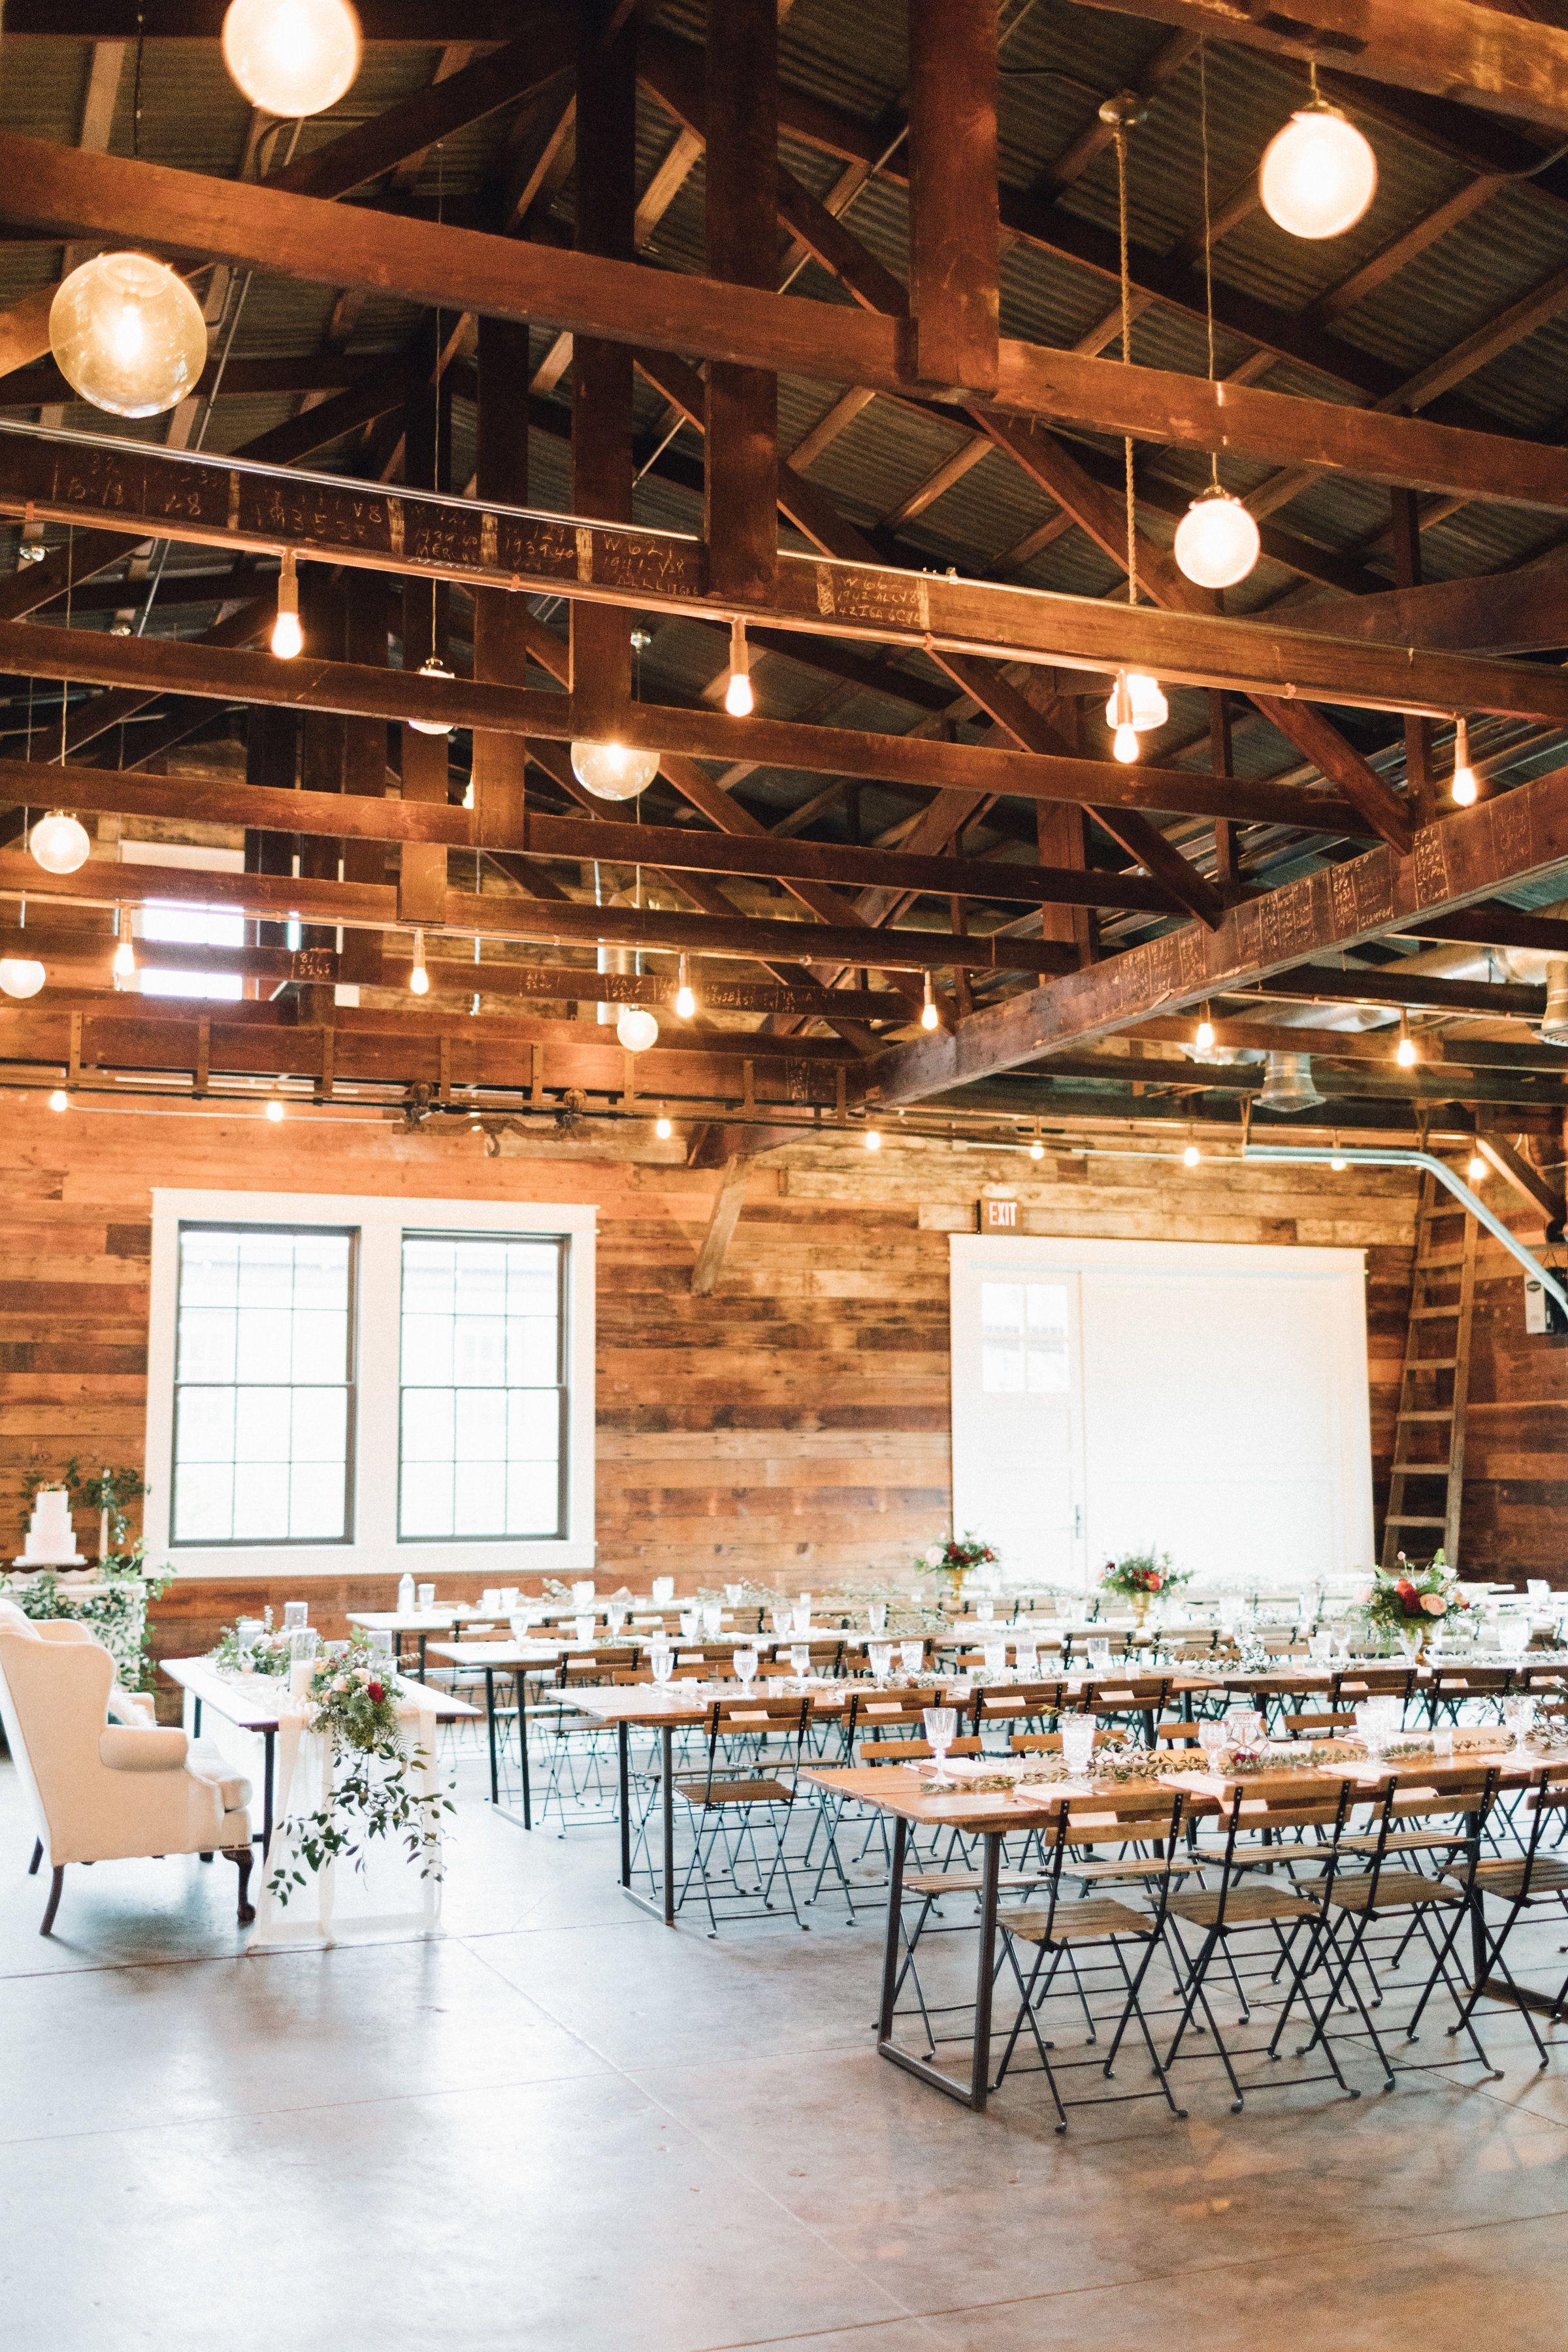 39 Of The Coolest Warehouse Venues Around The World Loft Spaces